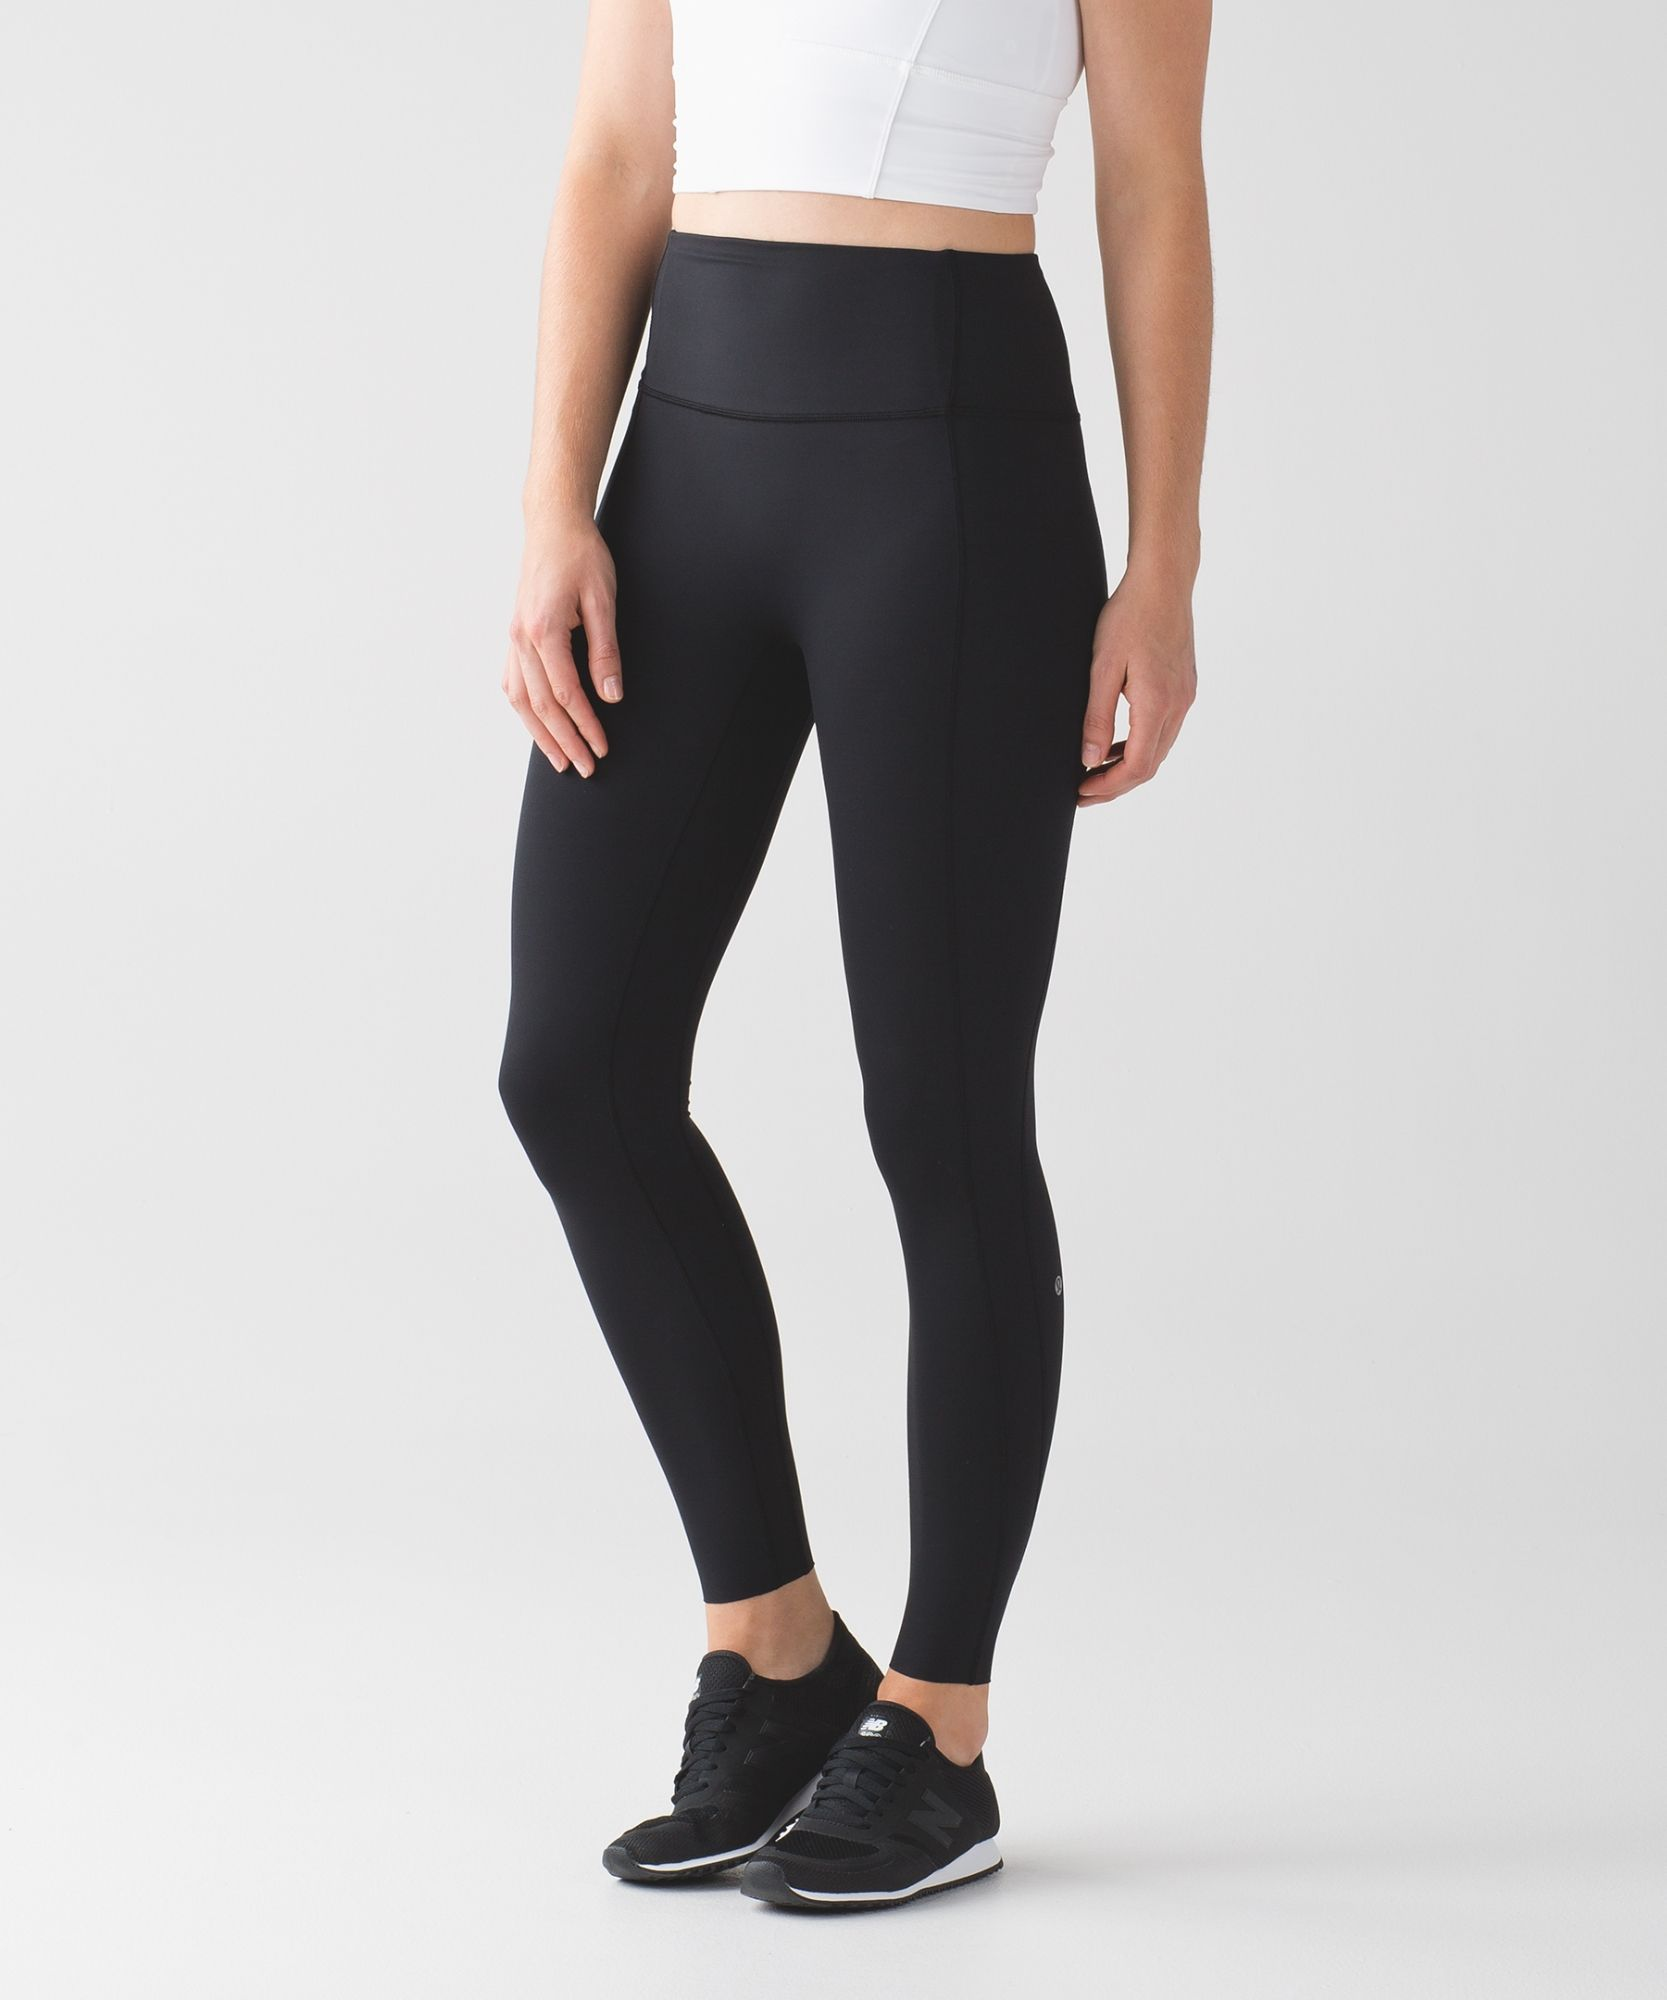 Like Nothing 7 8 Tight Women S Running Pants Lululemon Athletica Pants For Women Clothes Running Pants